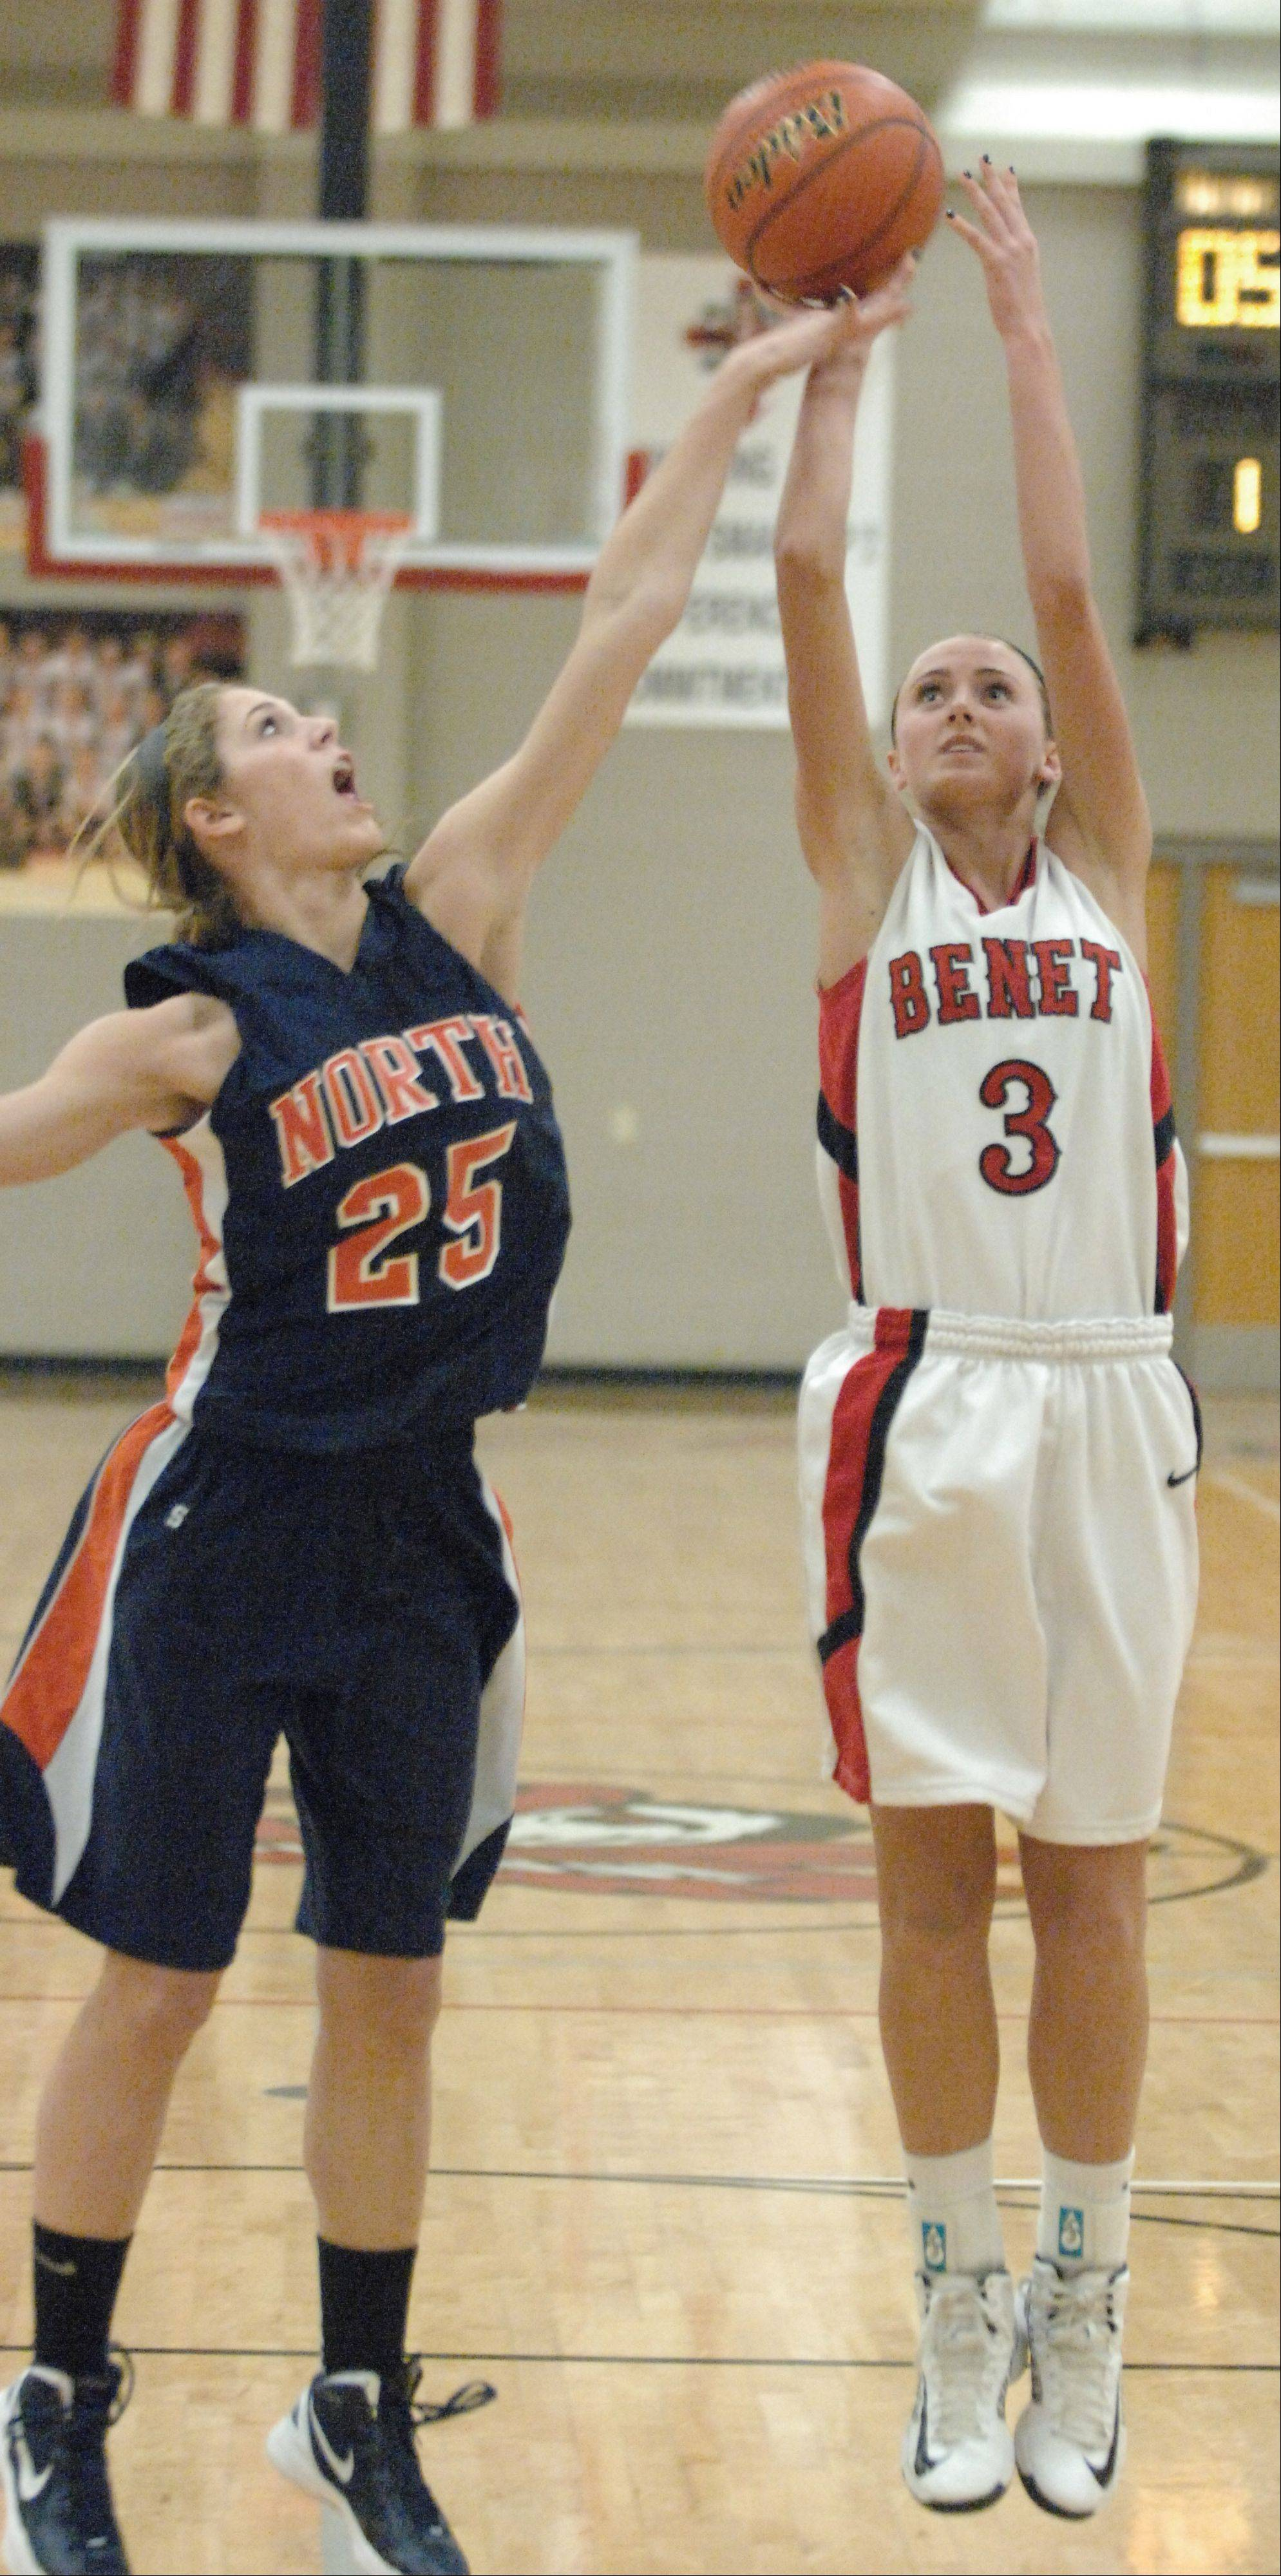 Kayla Sharples of Naperville North and Christen Prasse of Benet go up for a rebound.